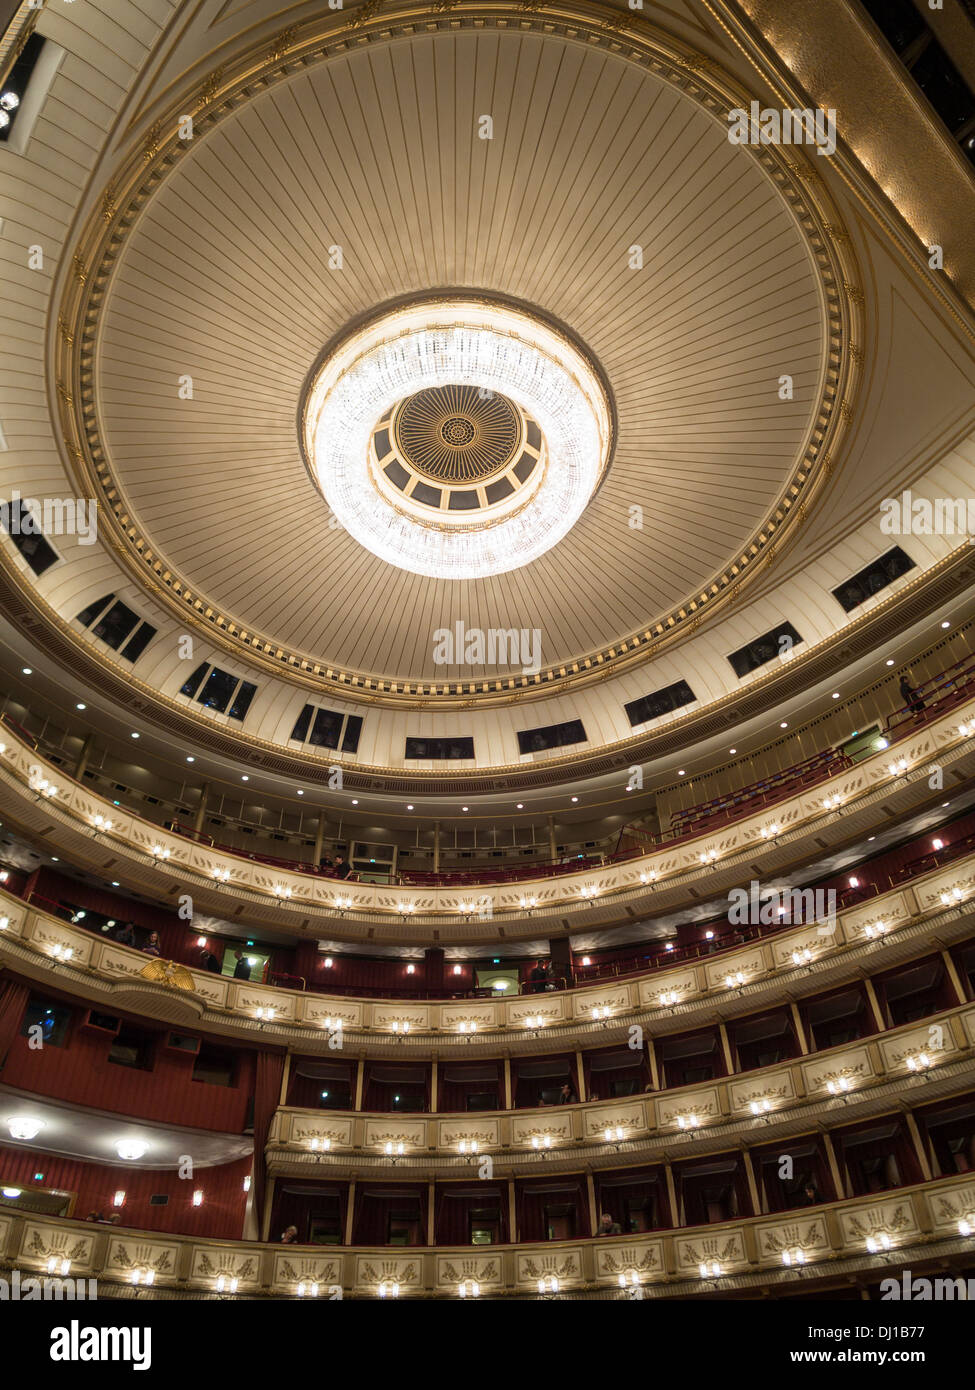 Ceiling and balconies of the main hall at Vienna State Opera. A large chandelier dominates the circular space. - Stock Image